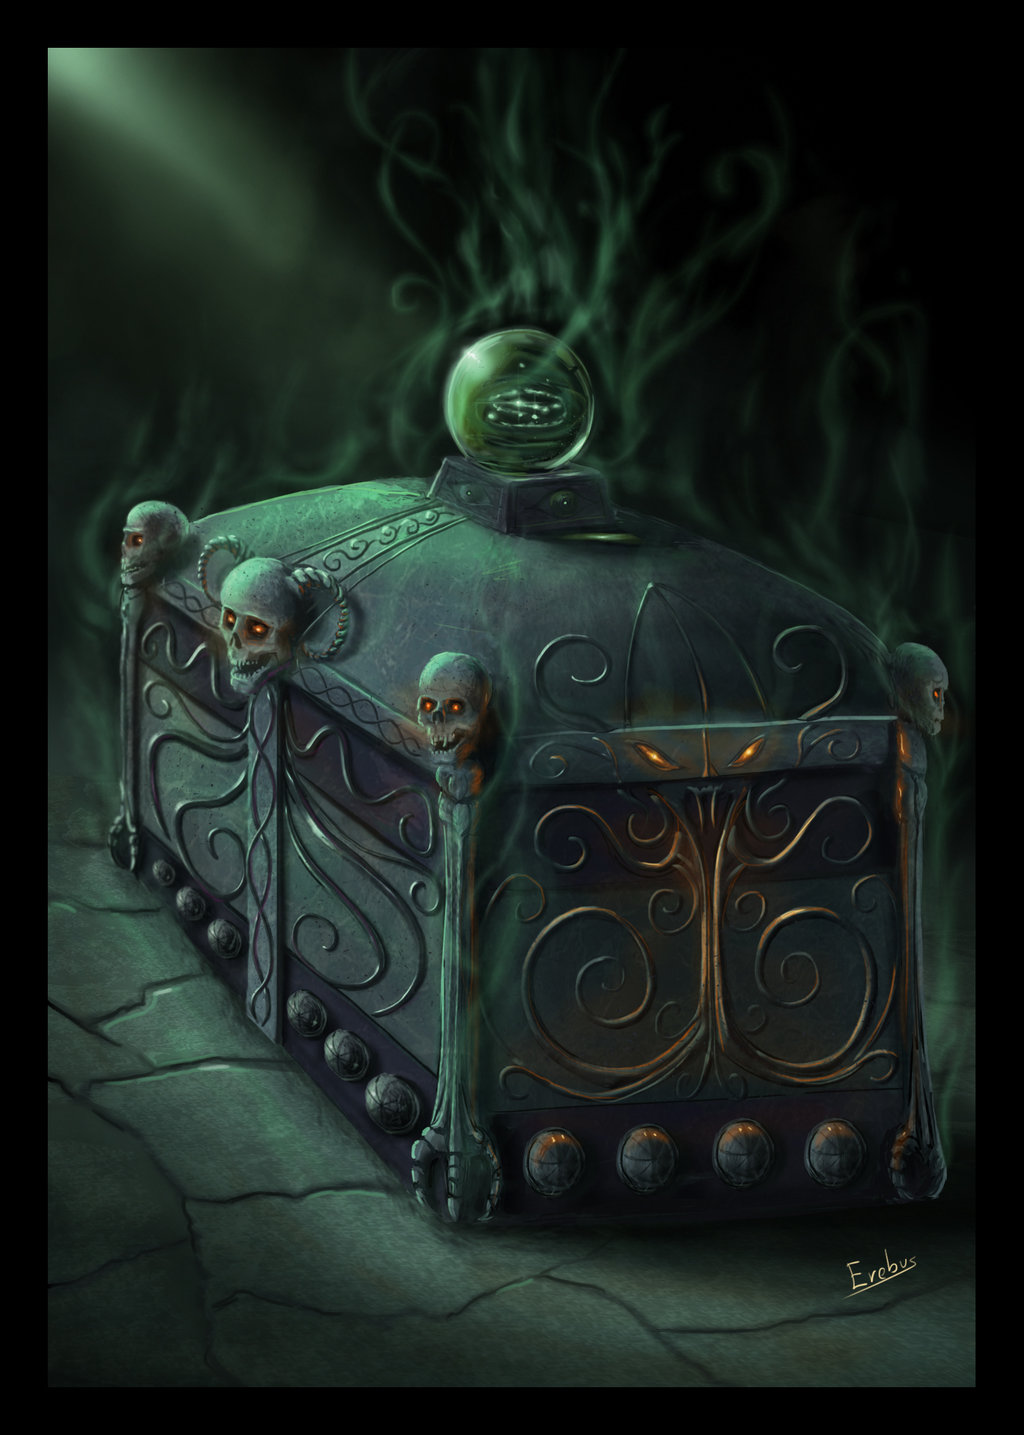 Vente aux enchères Treasure_chest_by_erebus74-d6nieh0